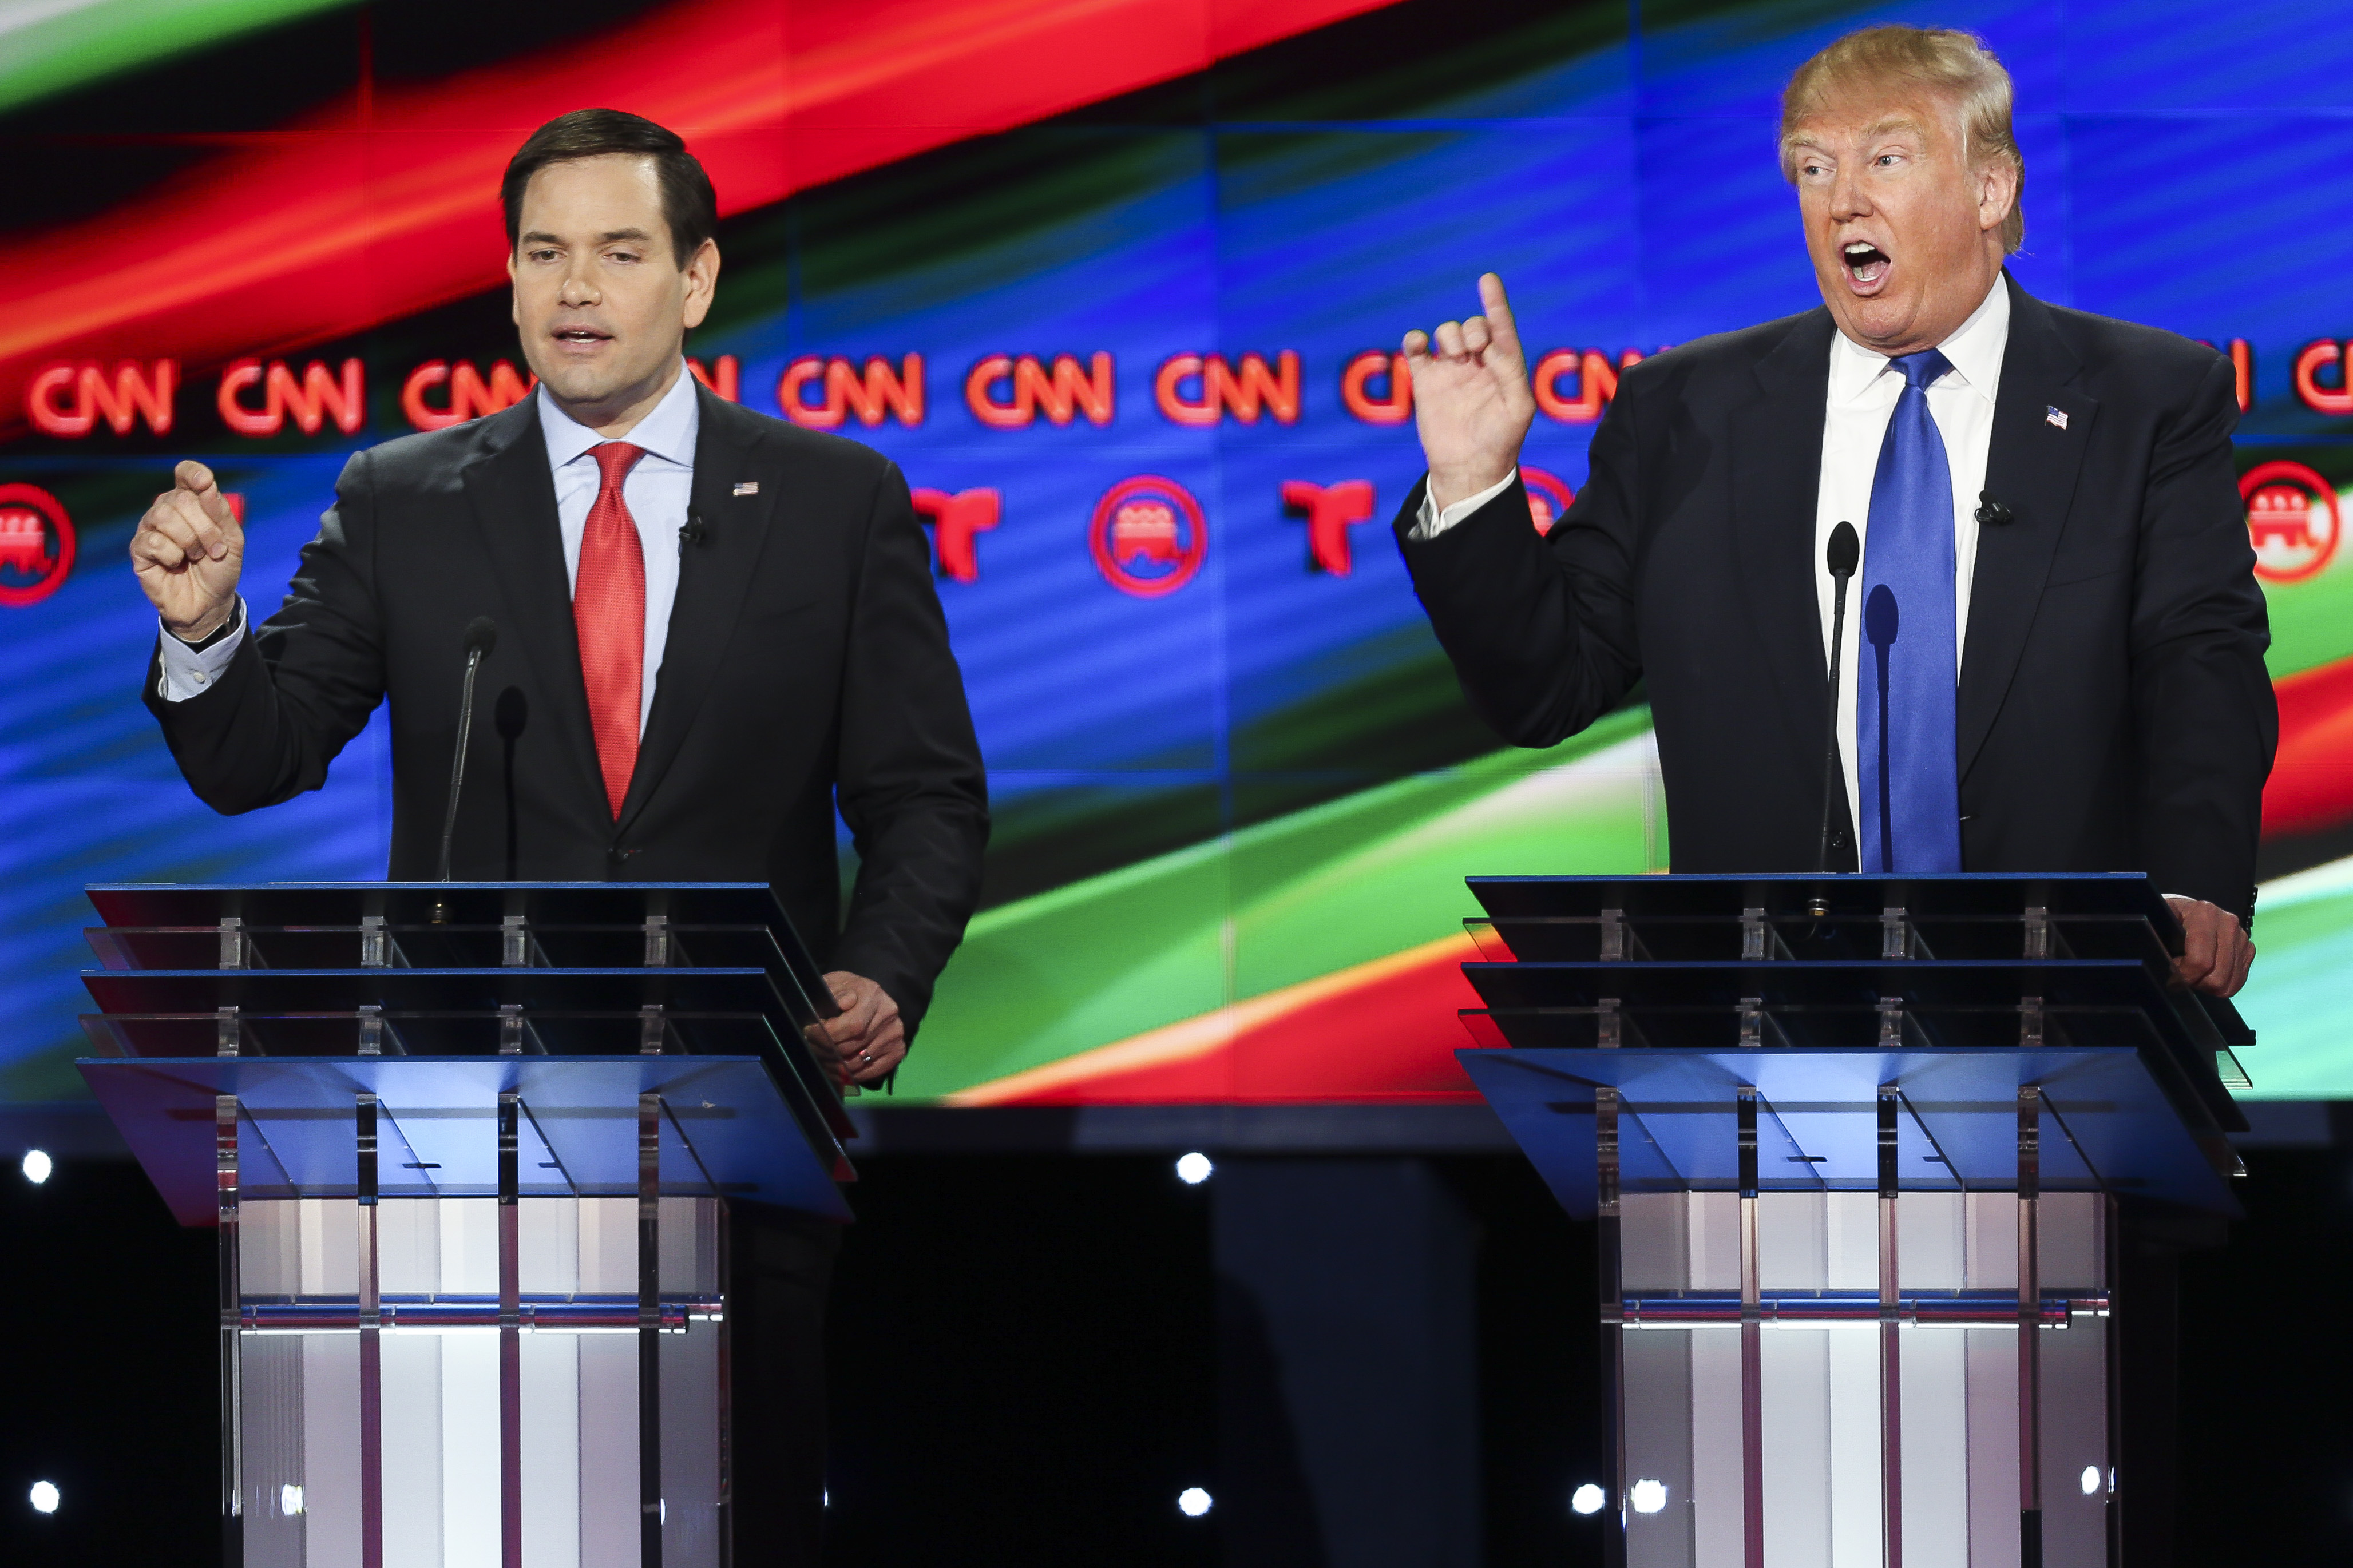 Marco Rubio faces off with Donald Trump.